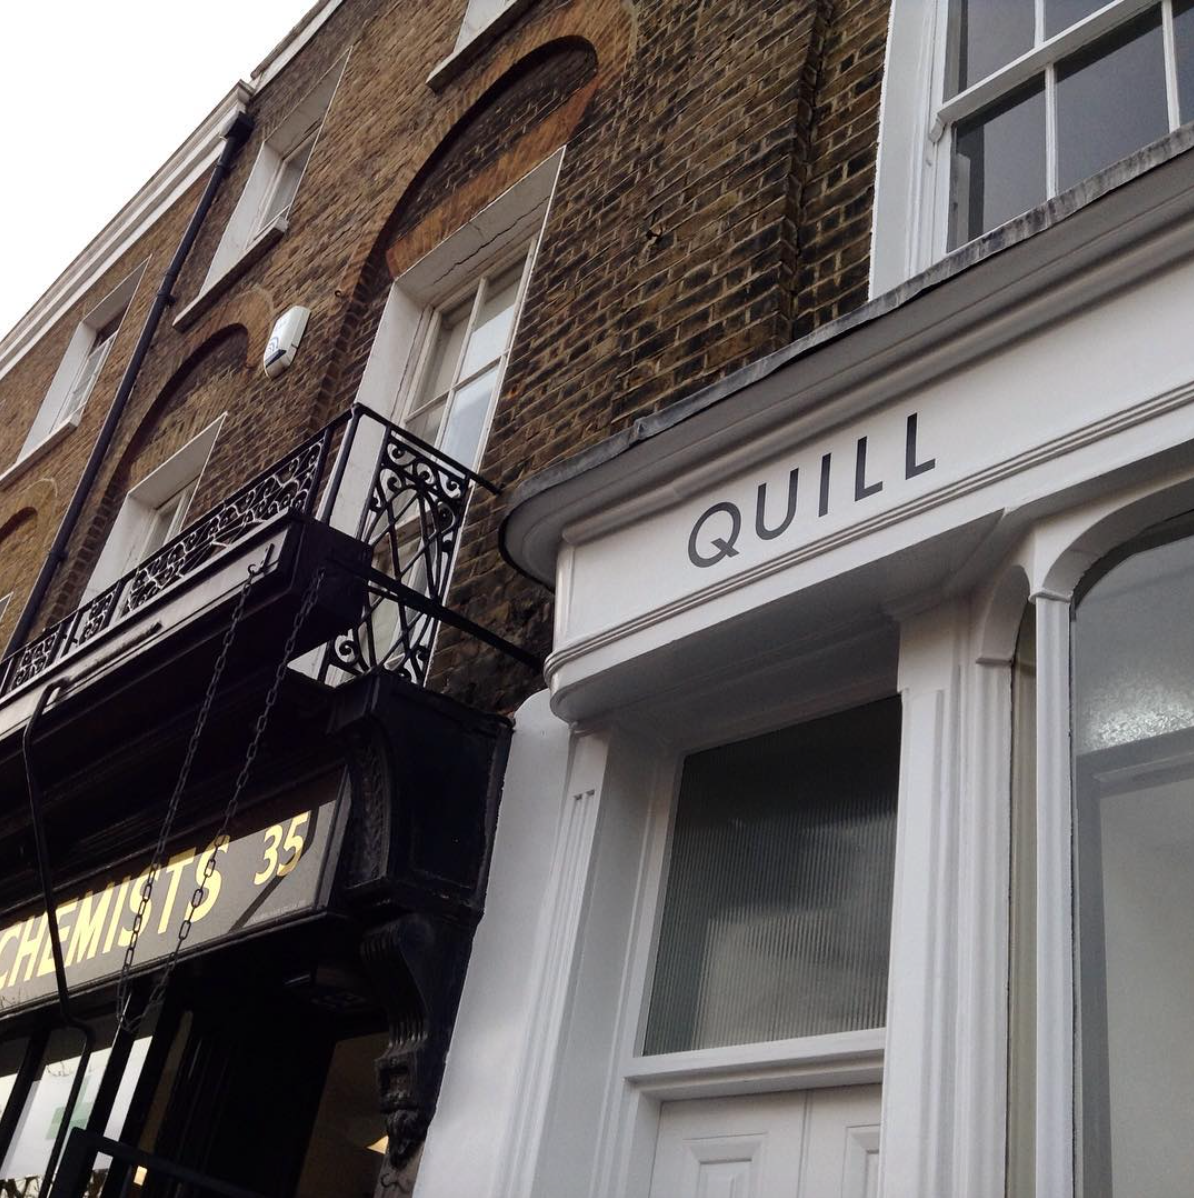 Quill London Shop